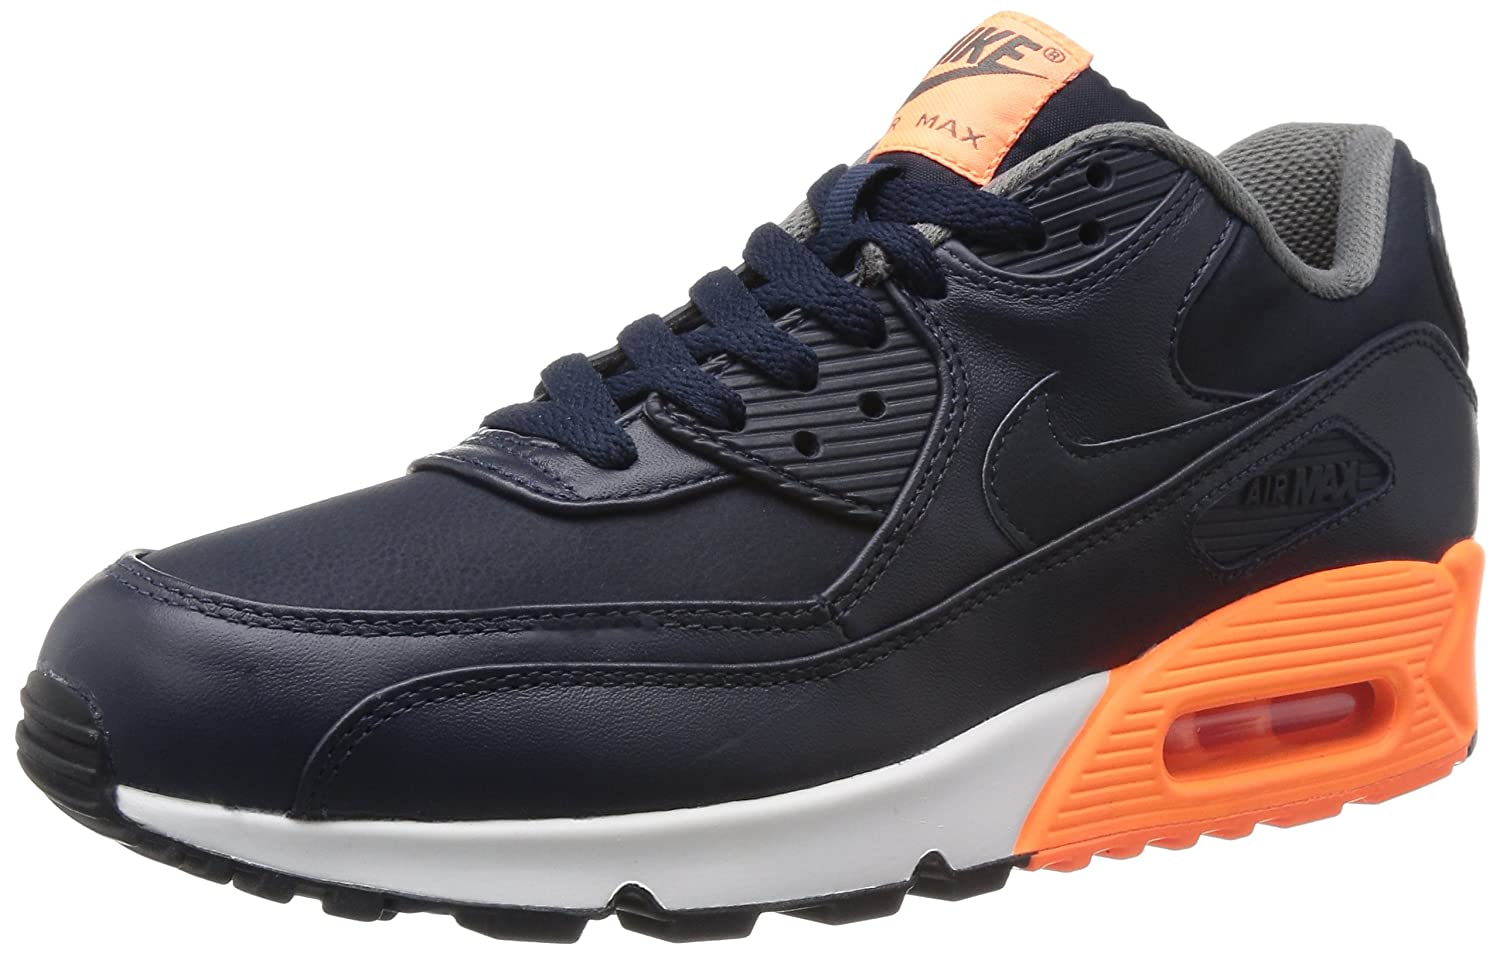 on sale c8ca6 ad16f Nike Air Max 90 Essential, Pantoufles Mixte Adulte  MainApps  Amazon.fr   Chaussures et Sacs